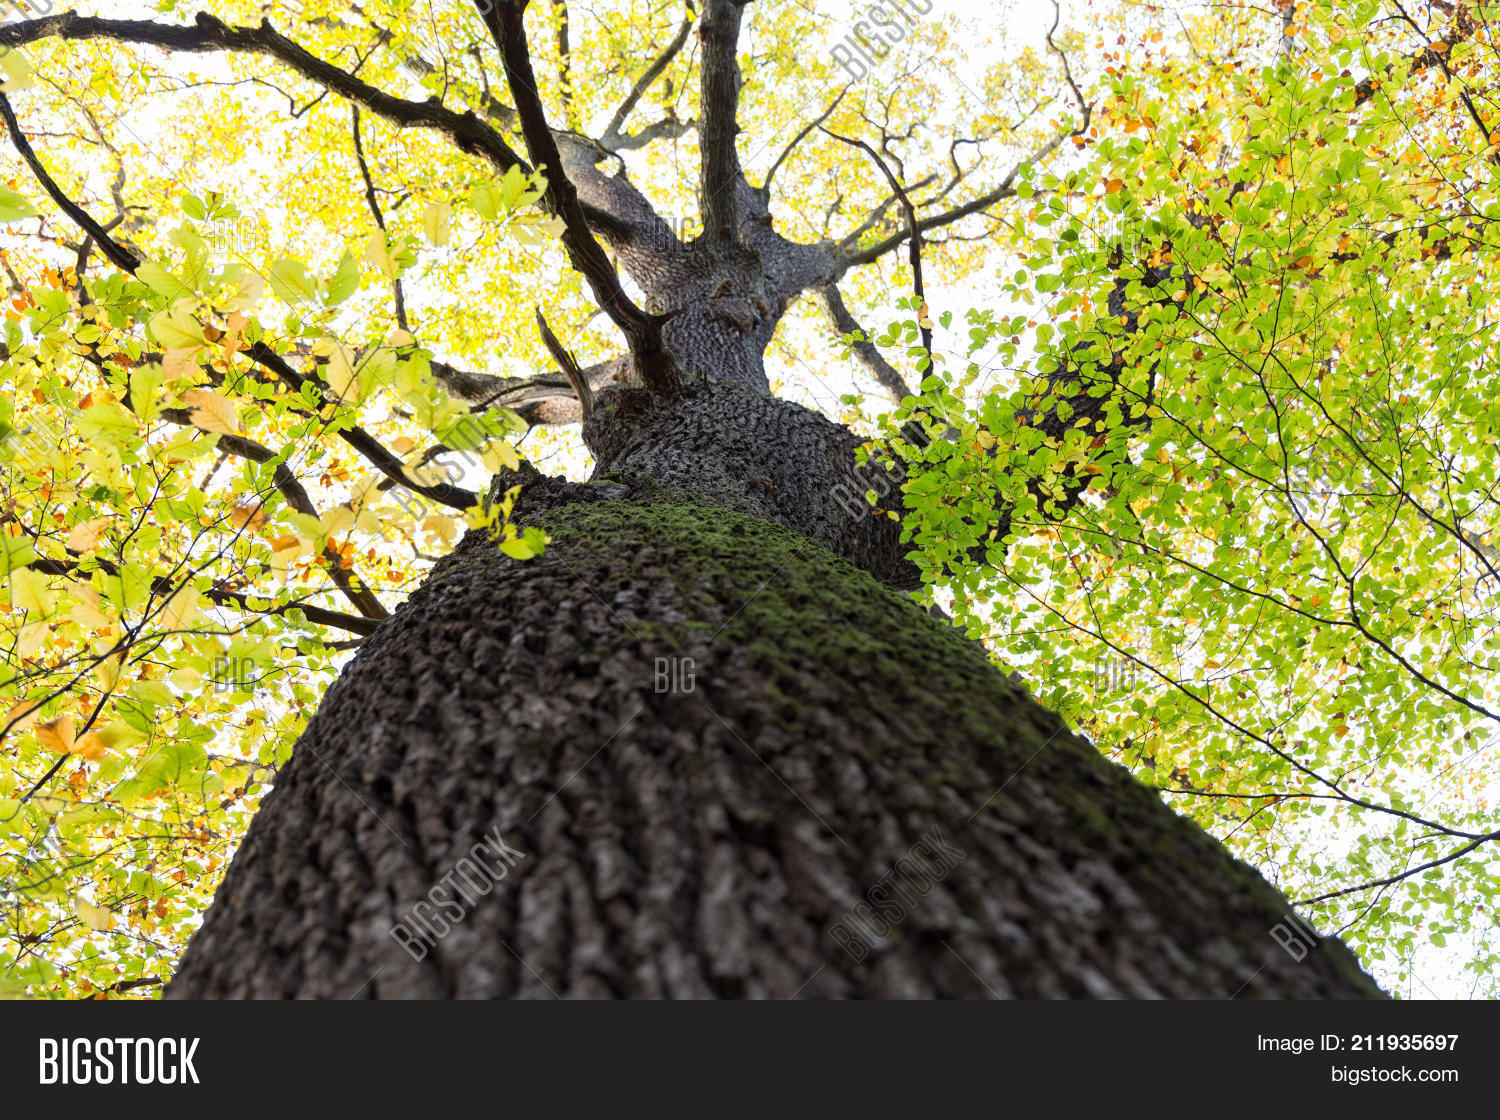 Tall Beech Tree Dark Image & Photo (Free Trial) | Bigstock